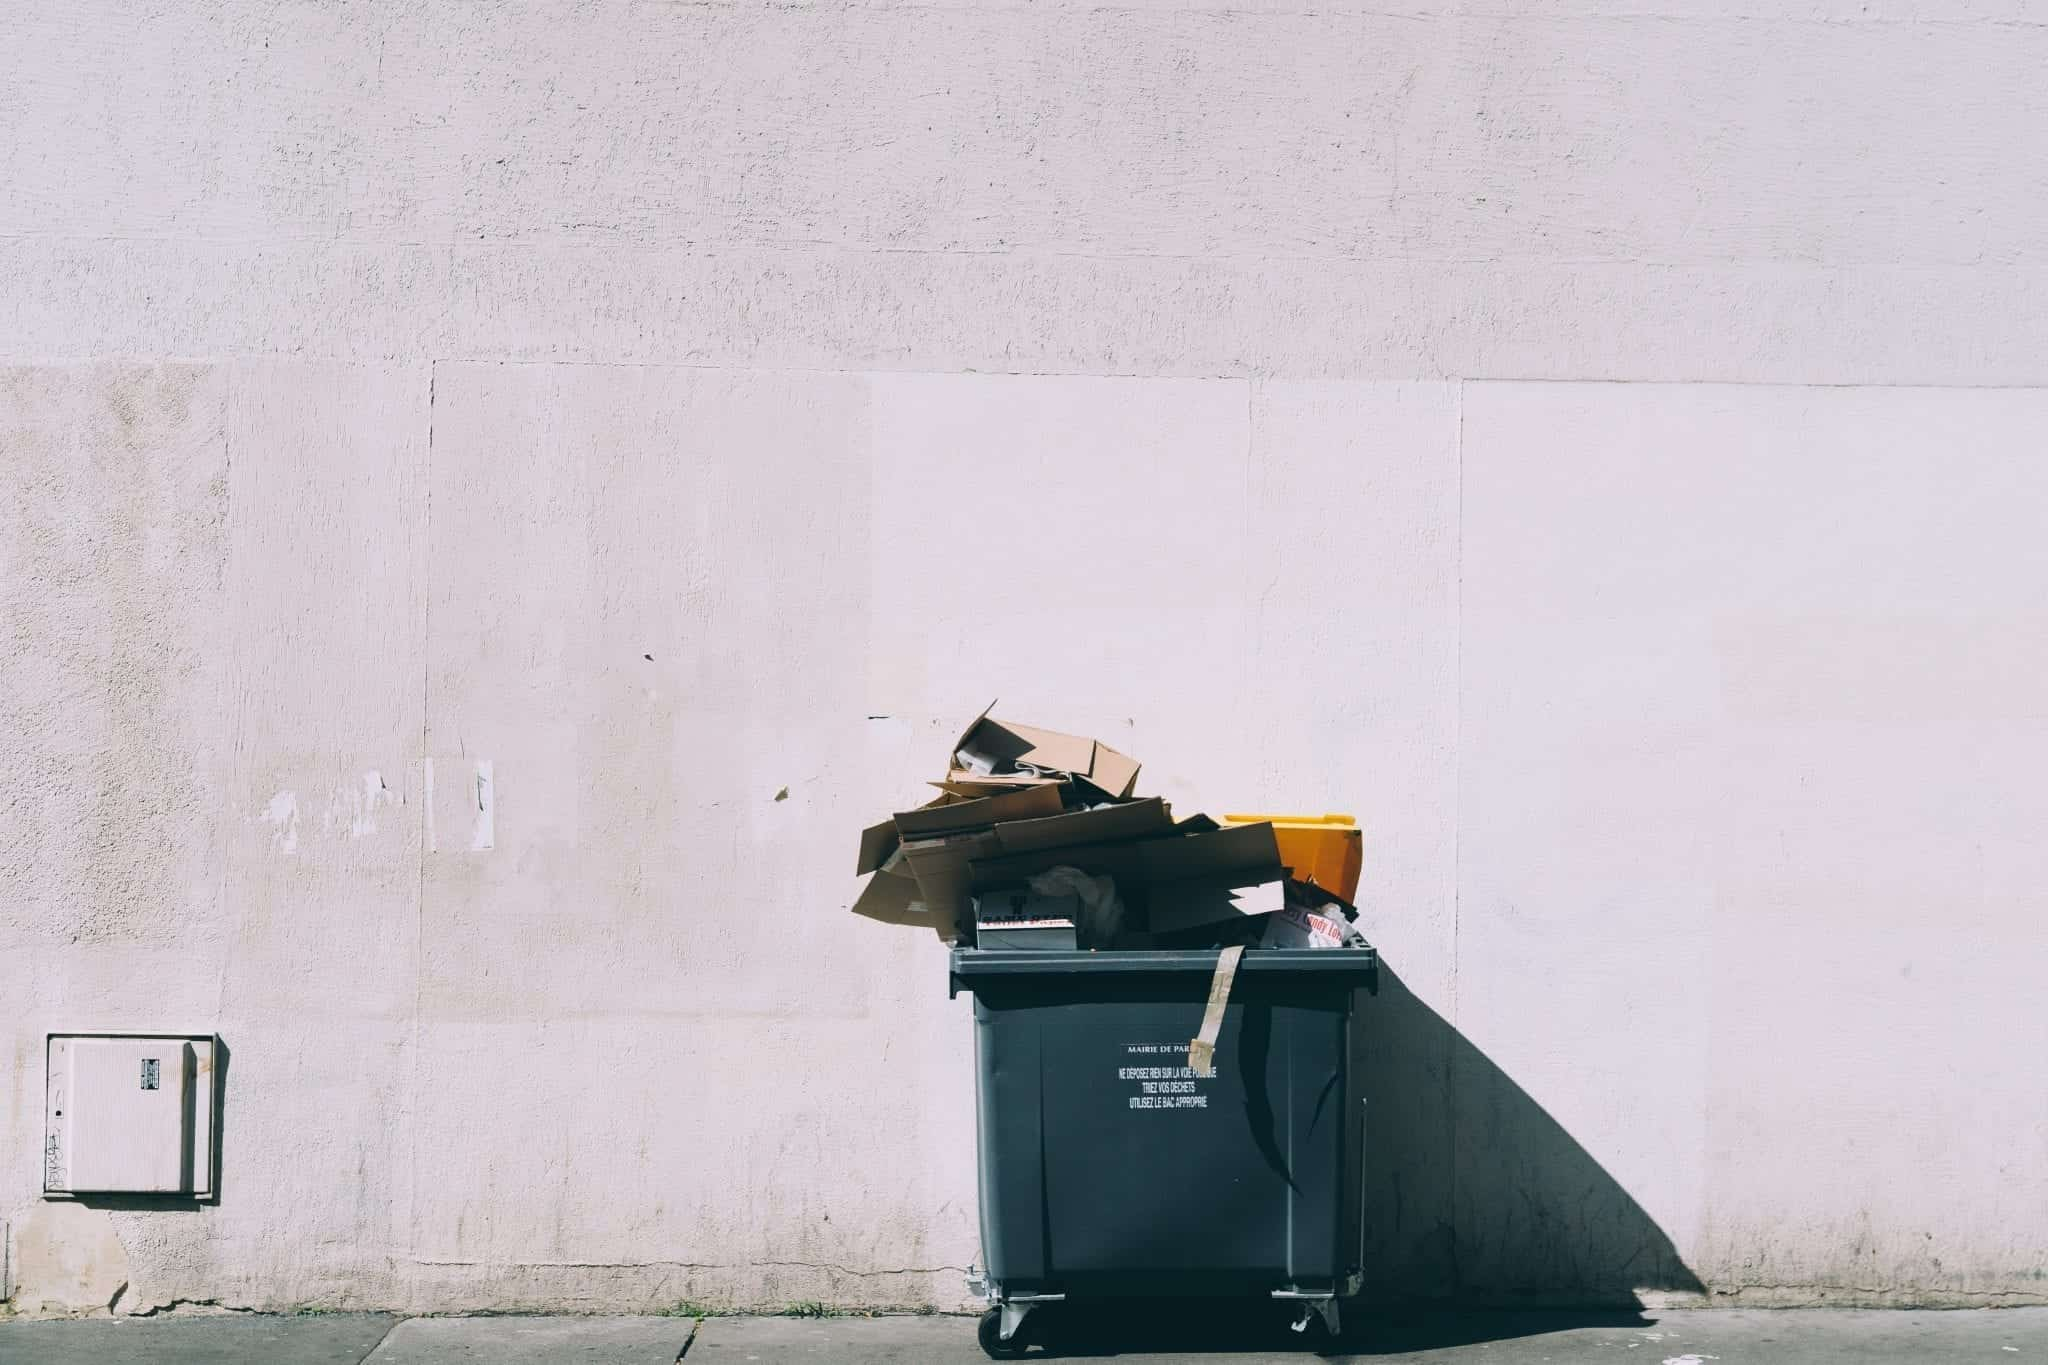 New York City Garbage Hauler Required to Halt Operations